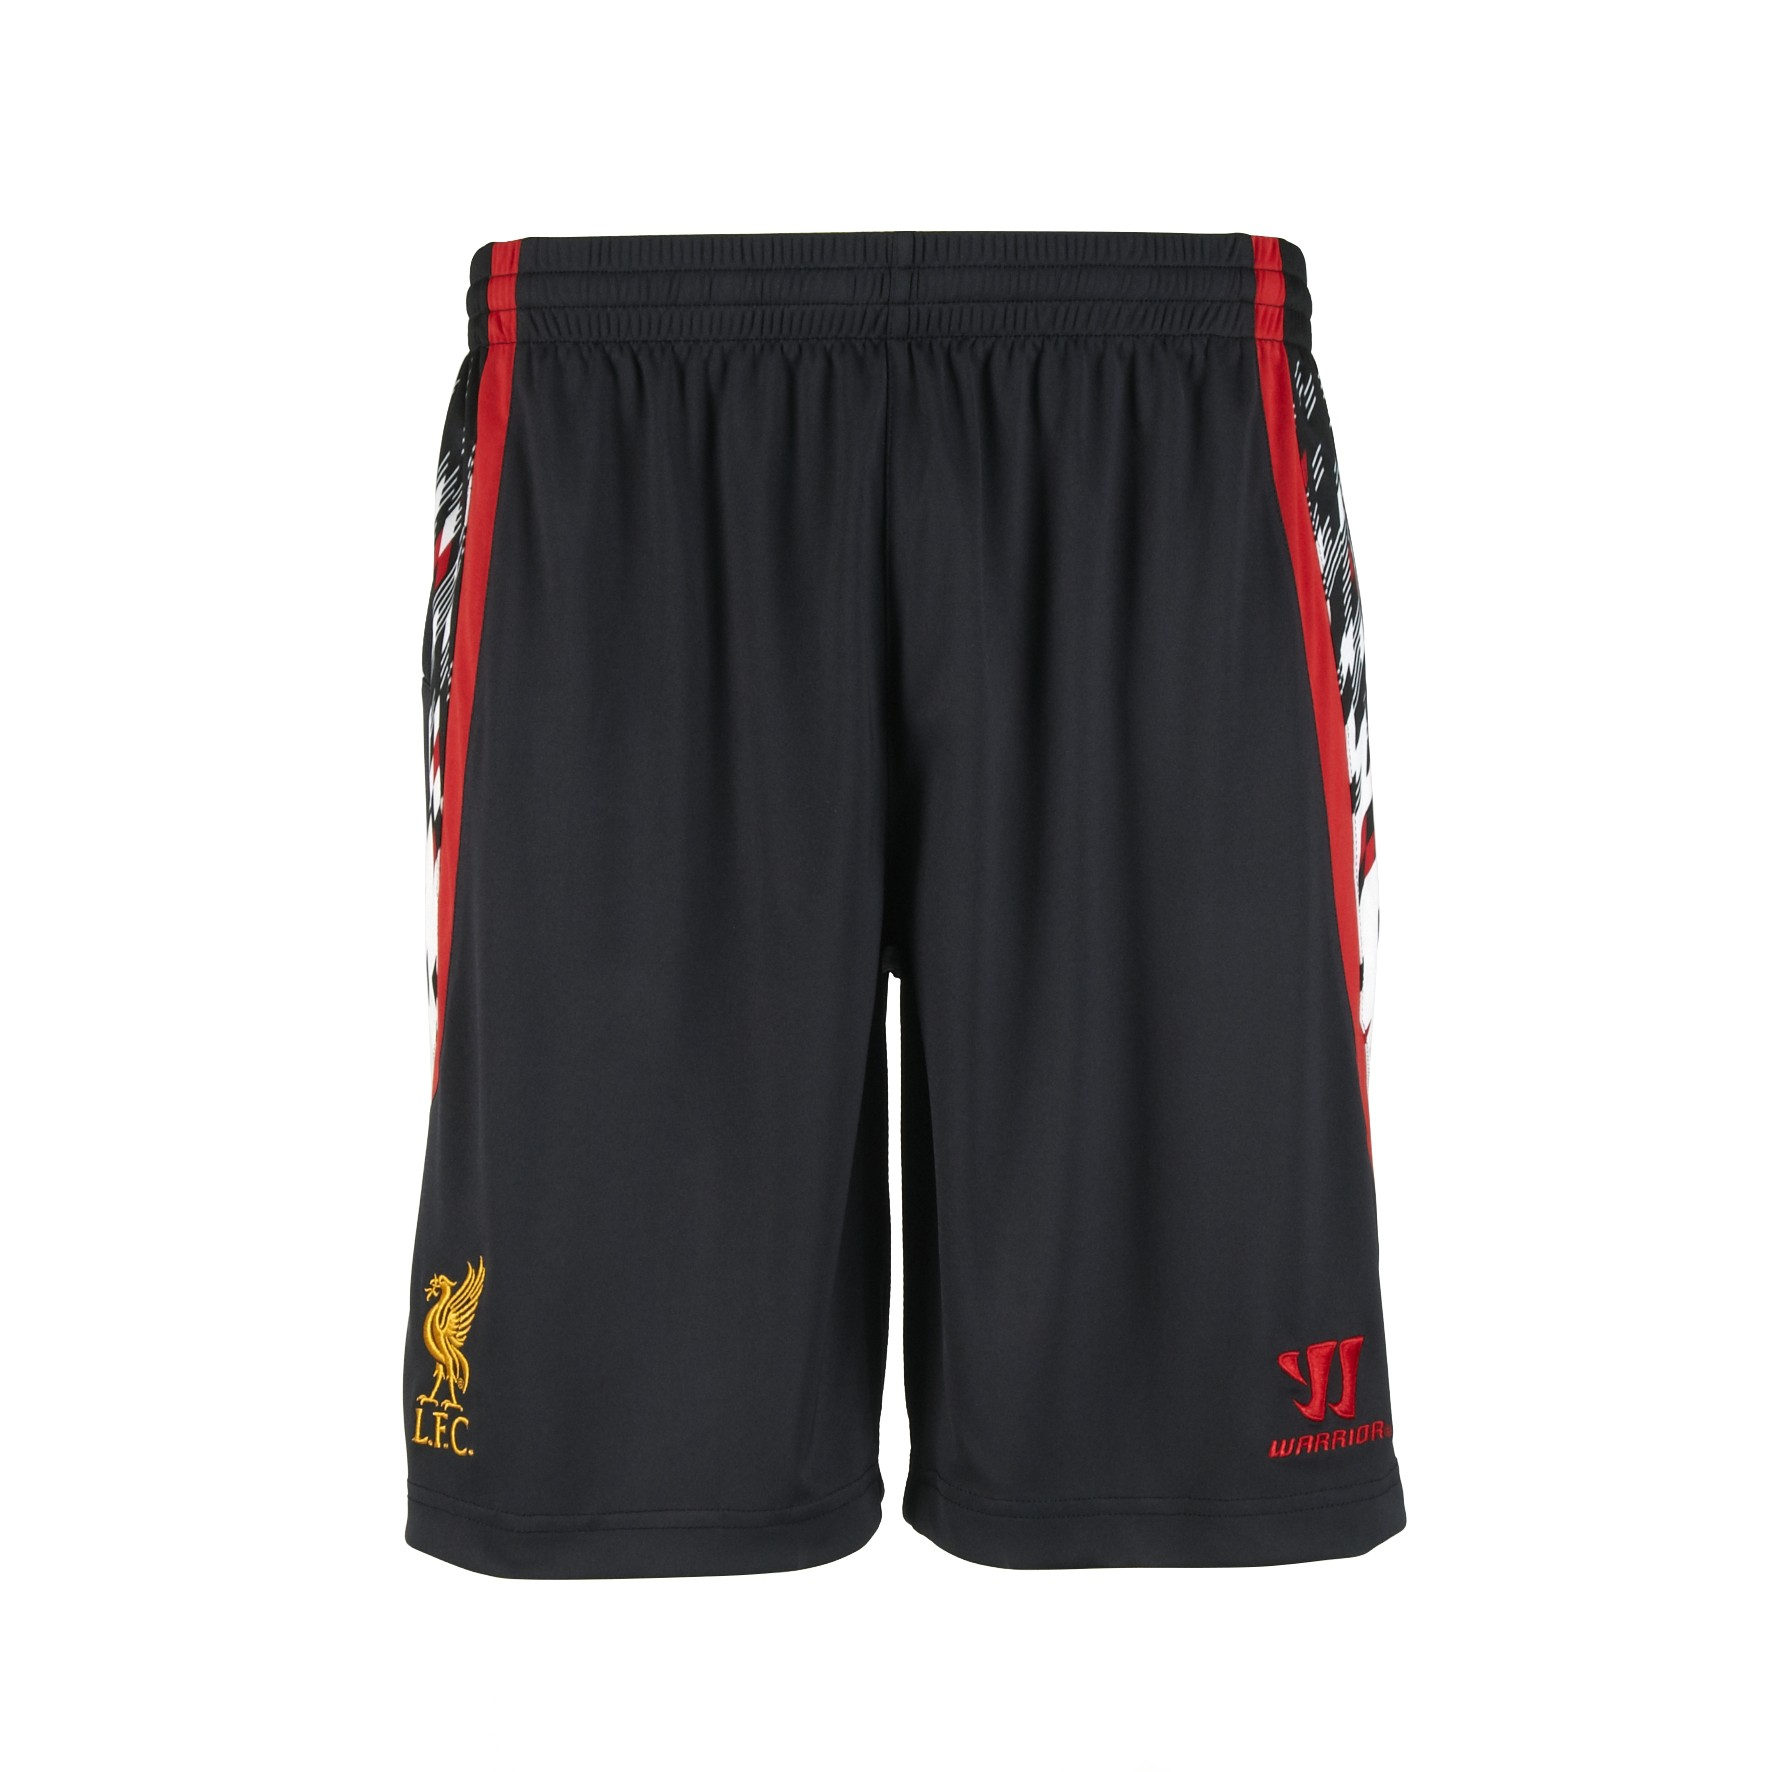 Liverpool FC away short knitted 2013/14